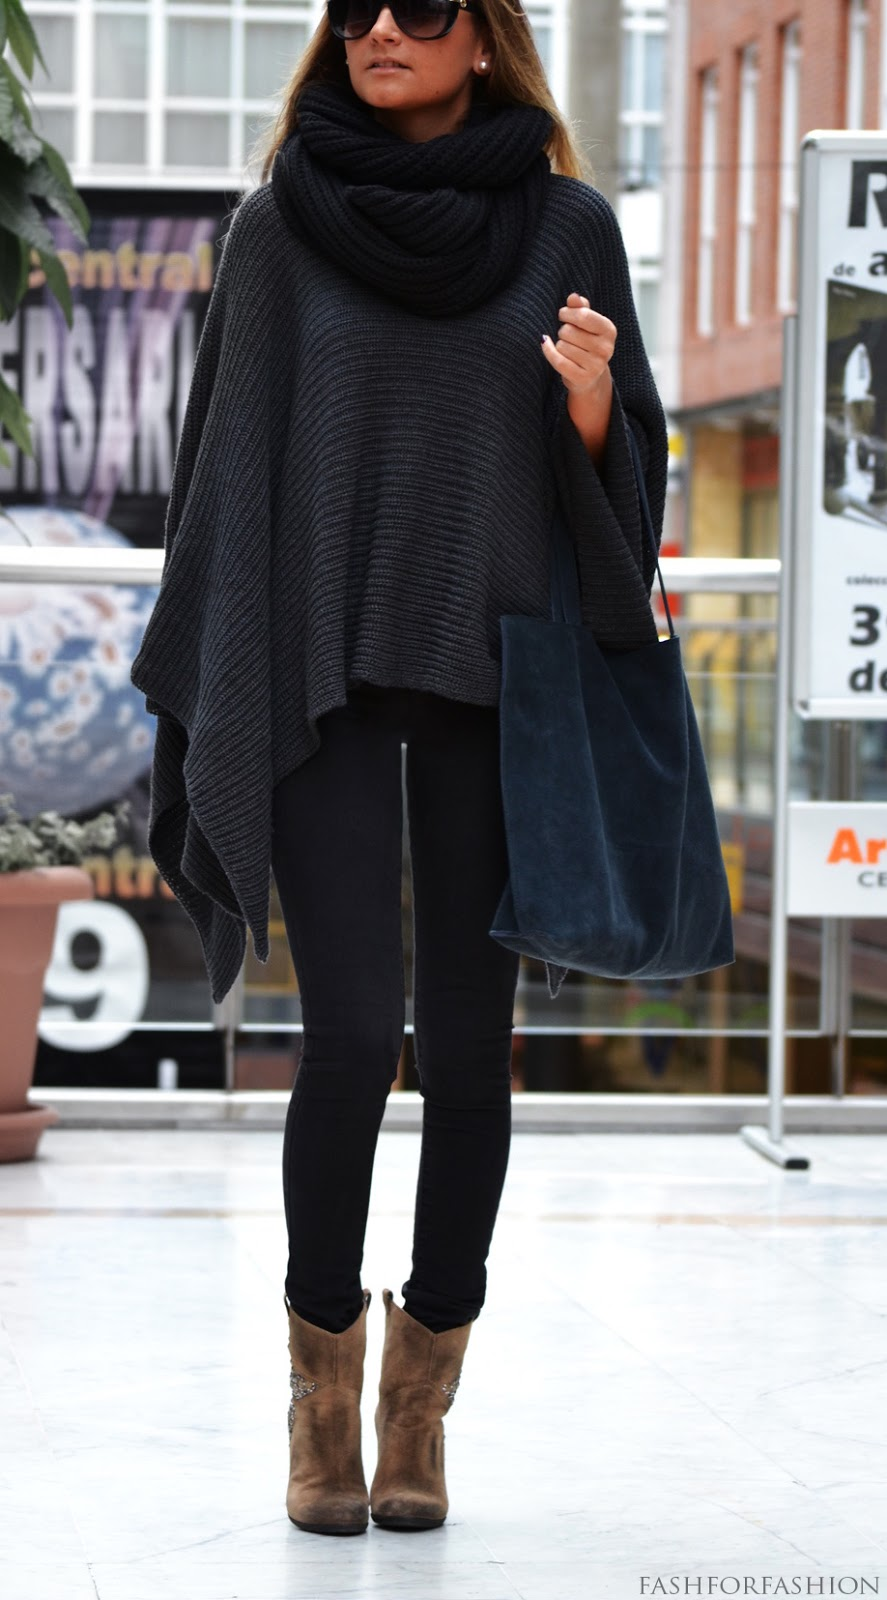 Poncho and Ankle Boots